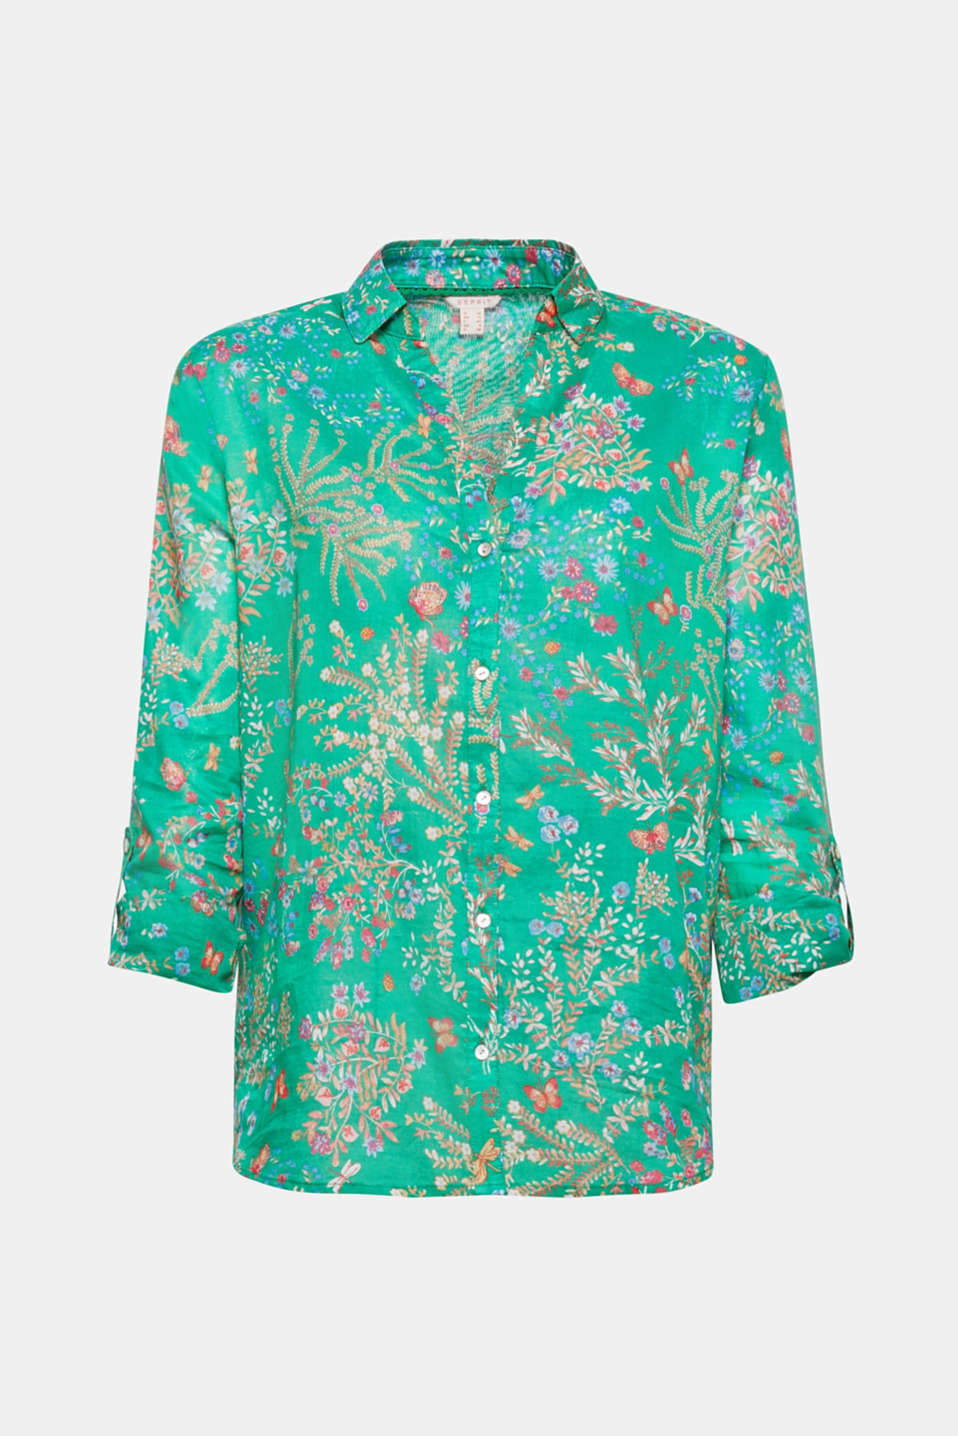 Flowers forever – even casual shirts embellished with colourful floral prints look casual and also incredibly feminine!